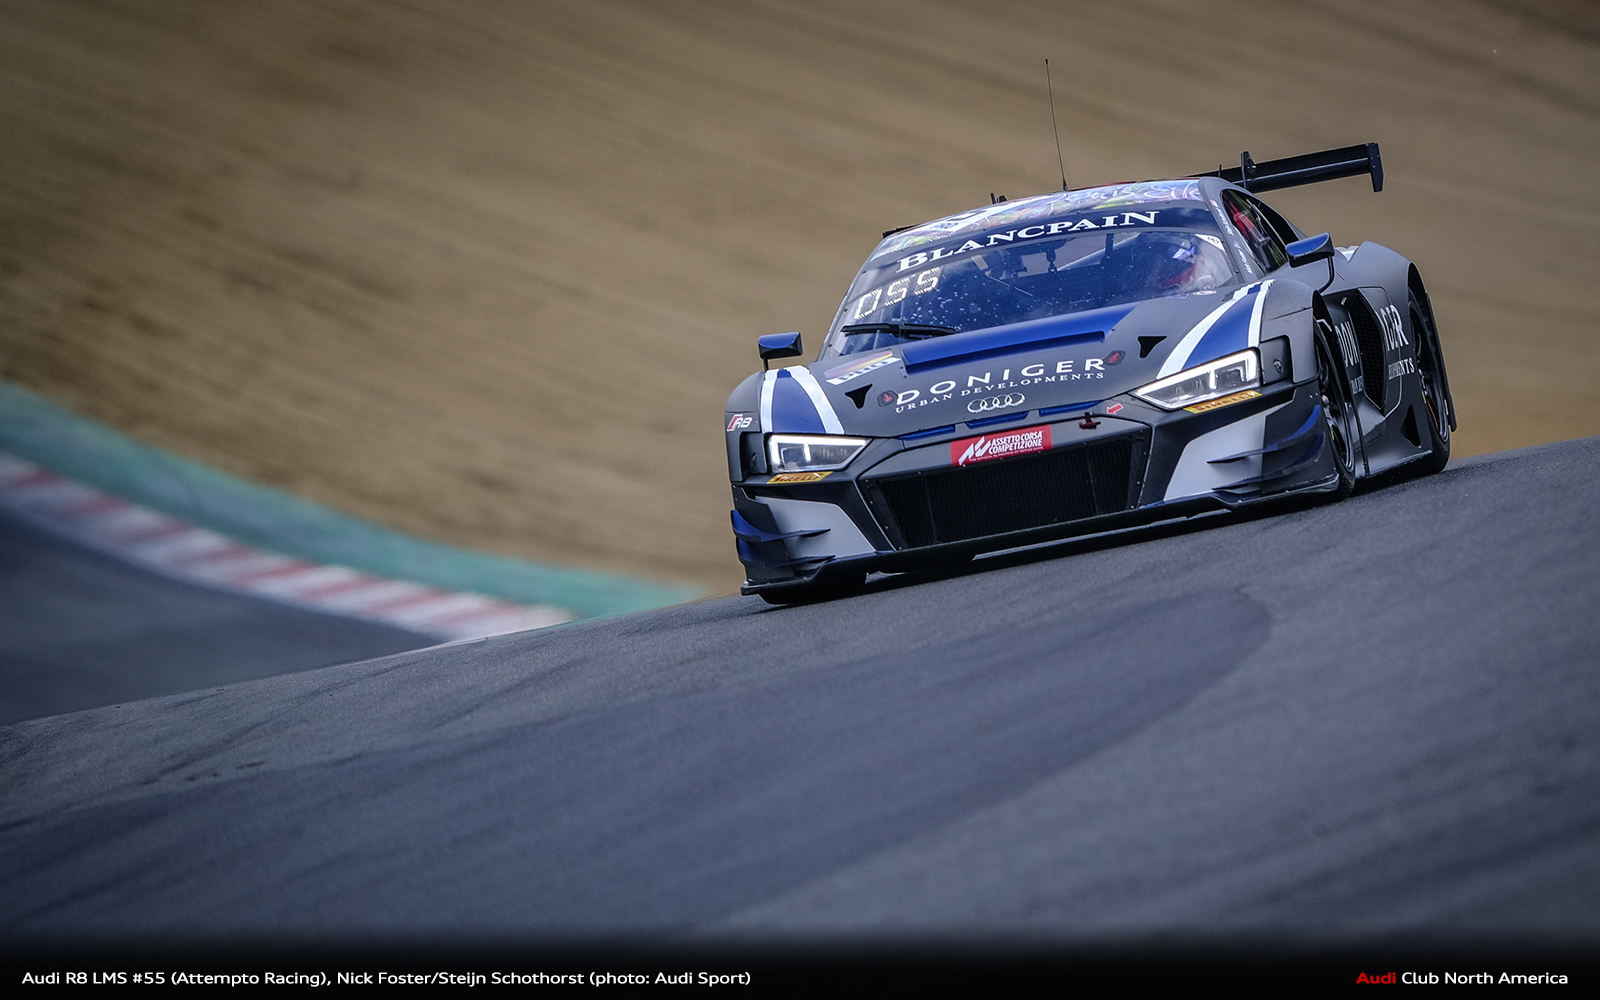 Audi R8 LMS Victorious in Australia and Sweden - Audi Club